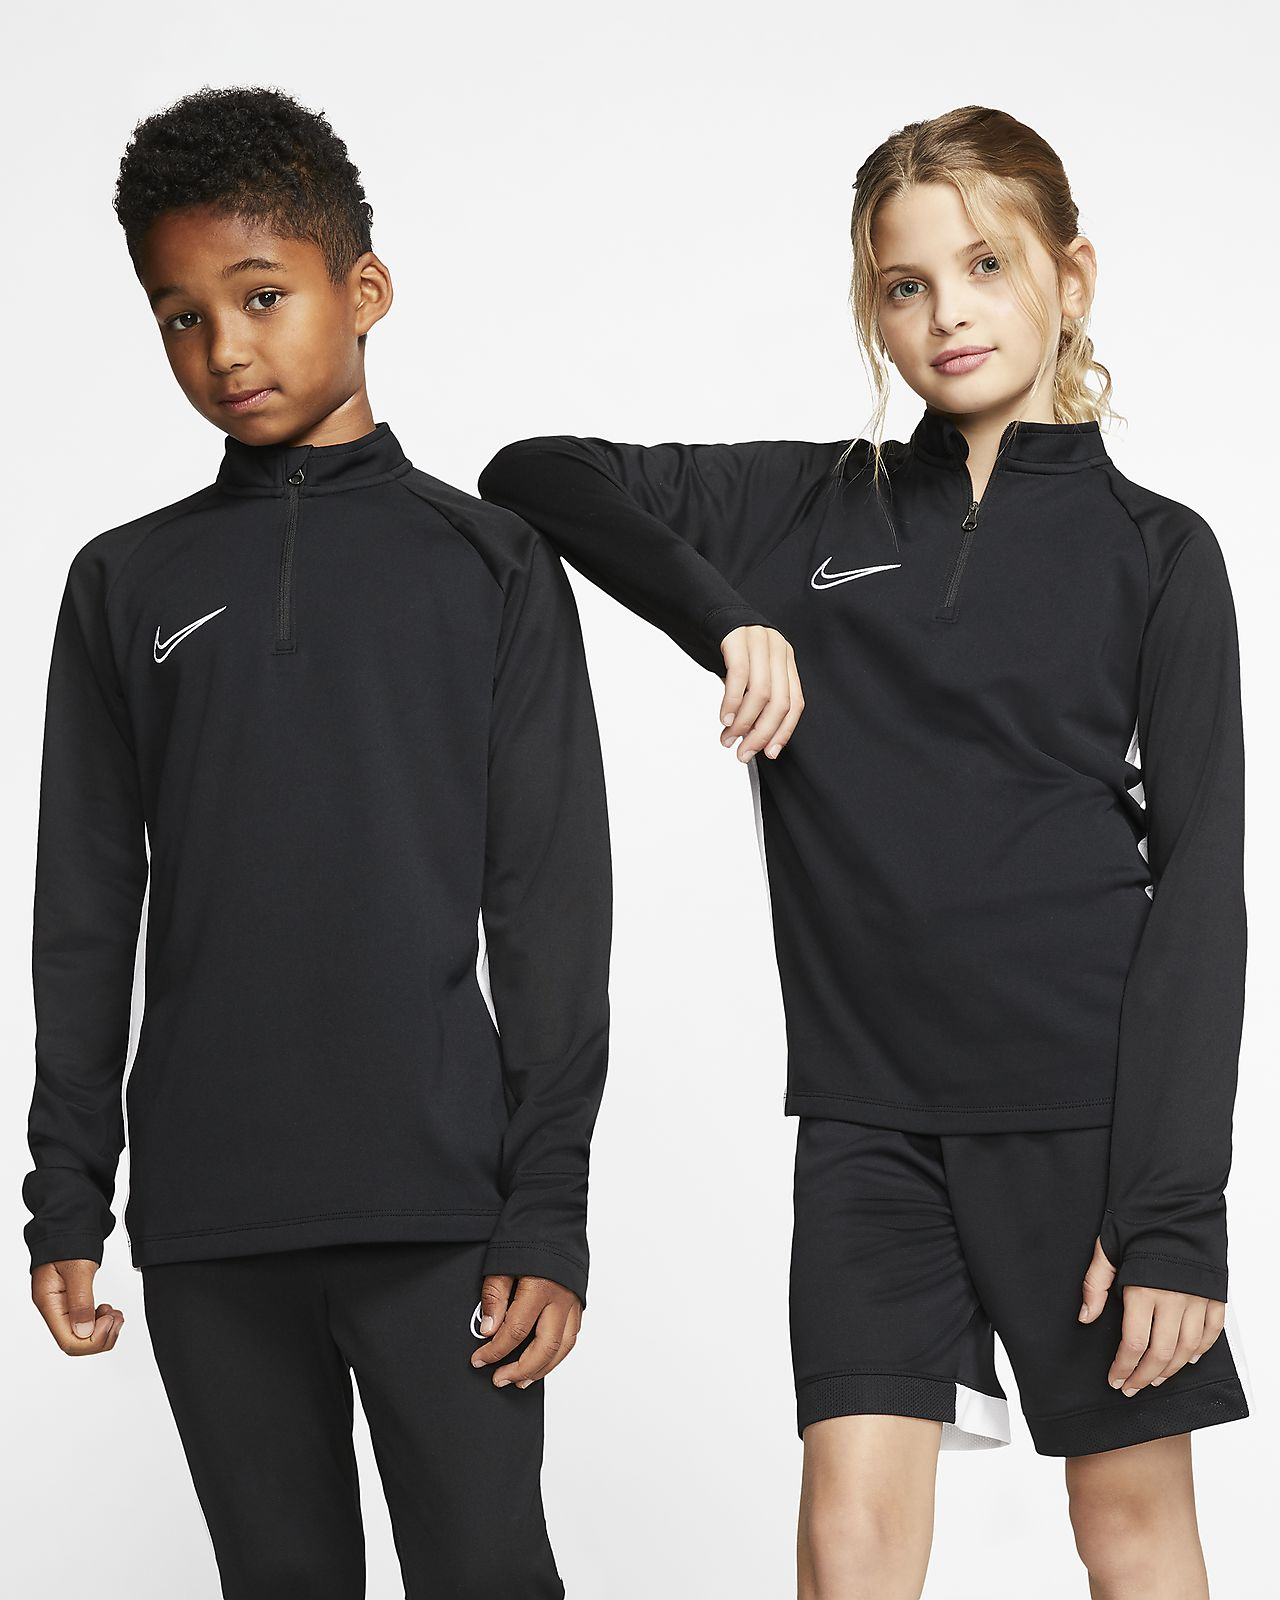 Nike Dri-FIT Academy Big Kids' Soccer Drill Top